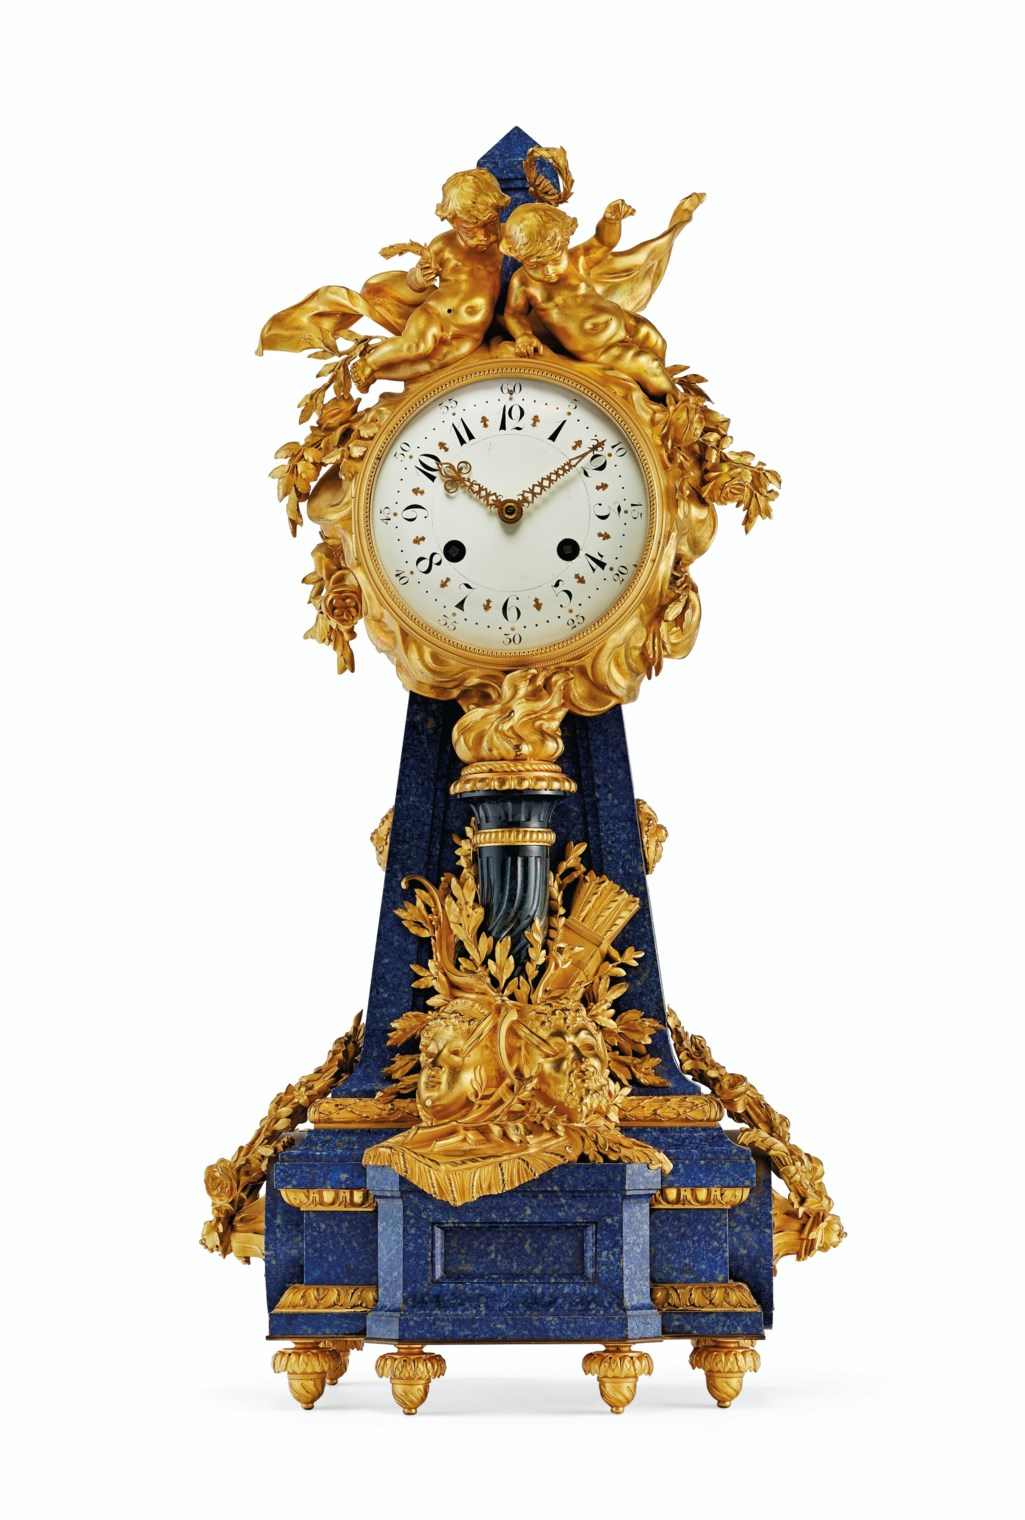 A FINE FRENCH ORMOLU-MOUNTED LAPIS LAZULI AND BLOODSTONE MANTLE CLOCK